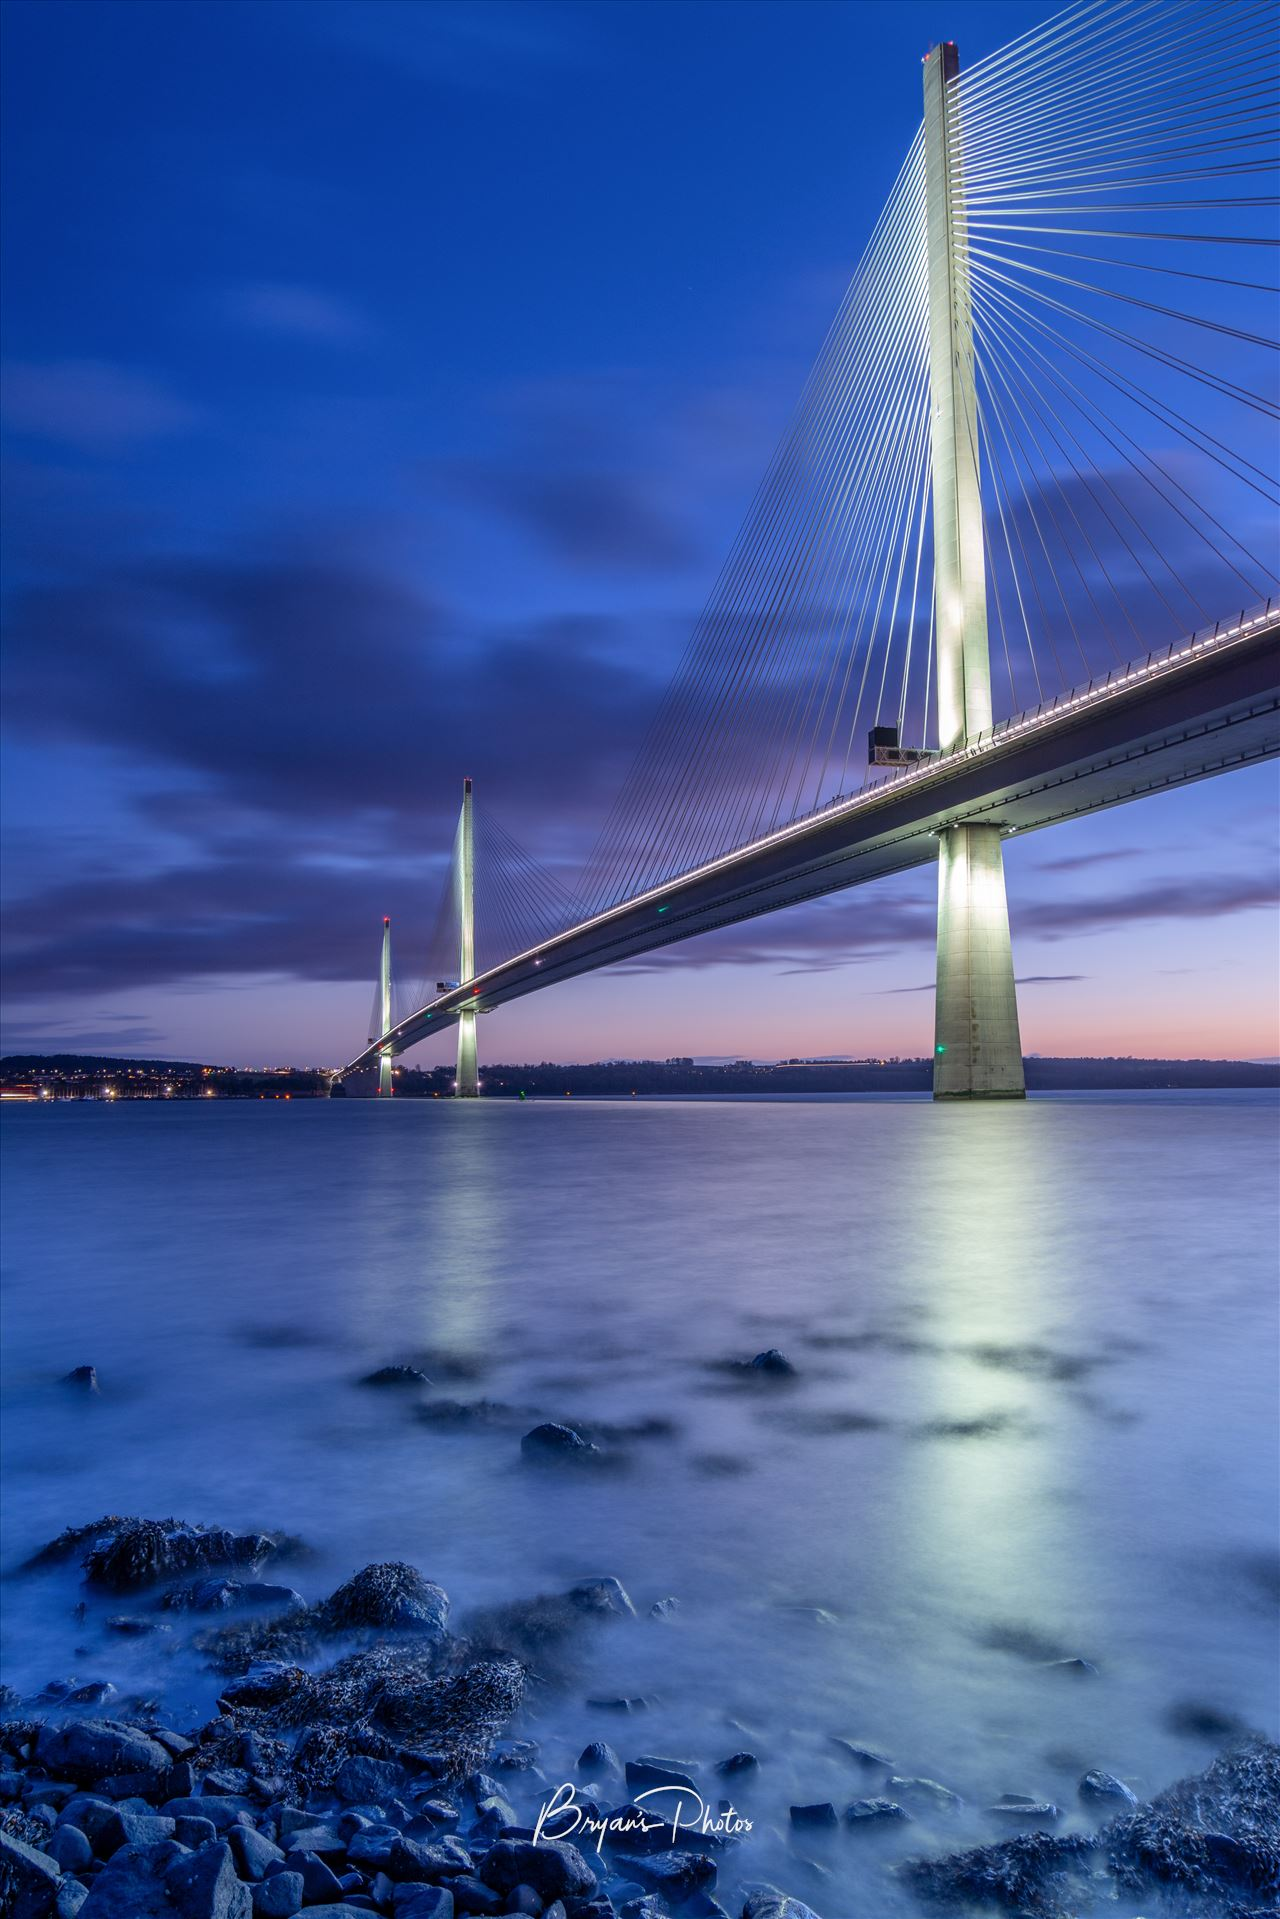 The Crossing at Night A photograph of the Queensferry crossing at night taken from North Queensferry. by Bryans Photos